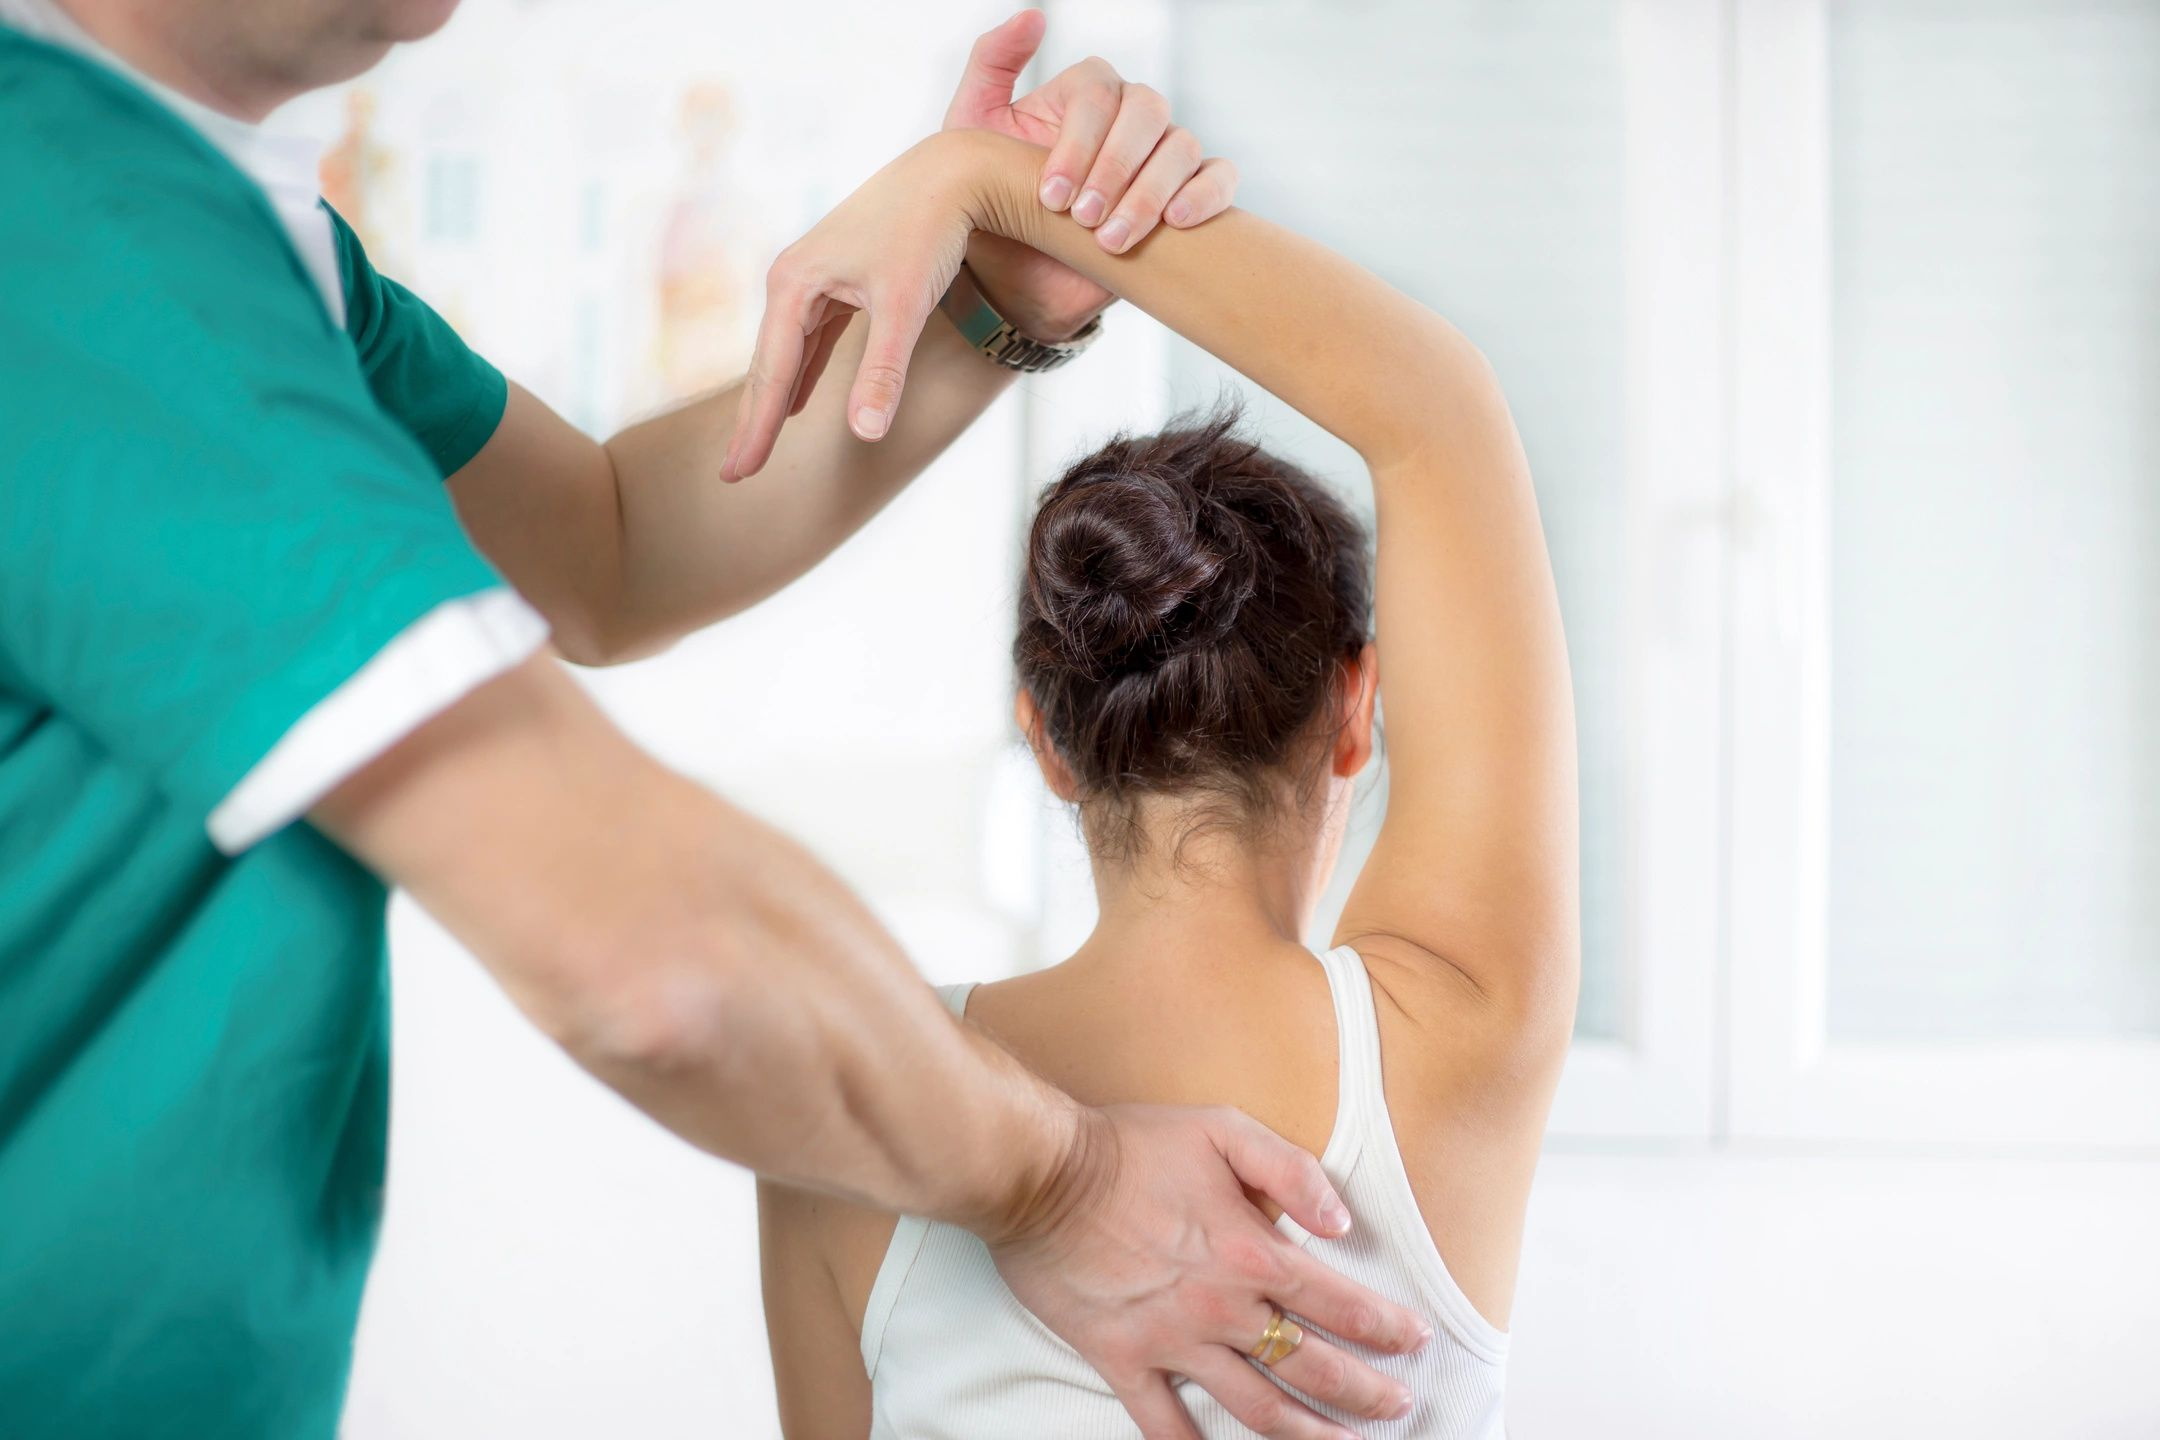 sciatic nerve pain and treatments